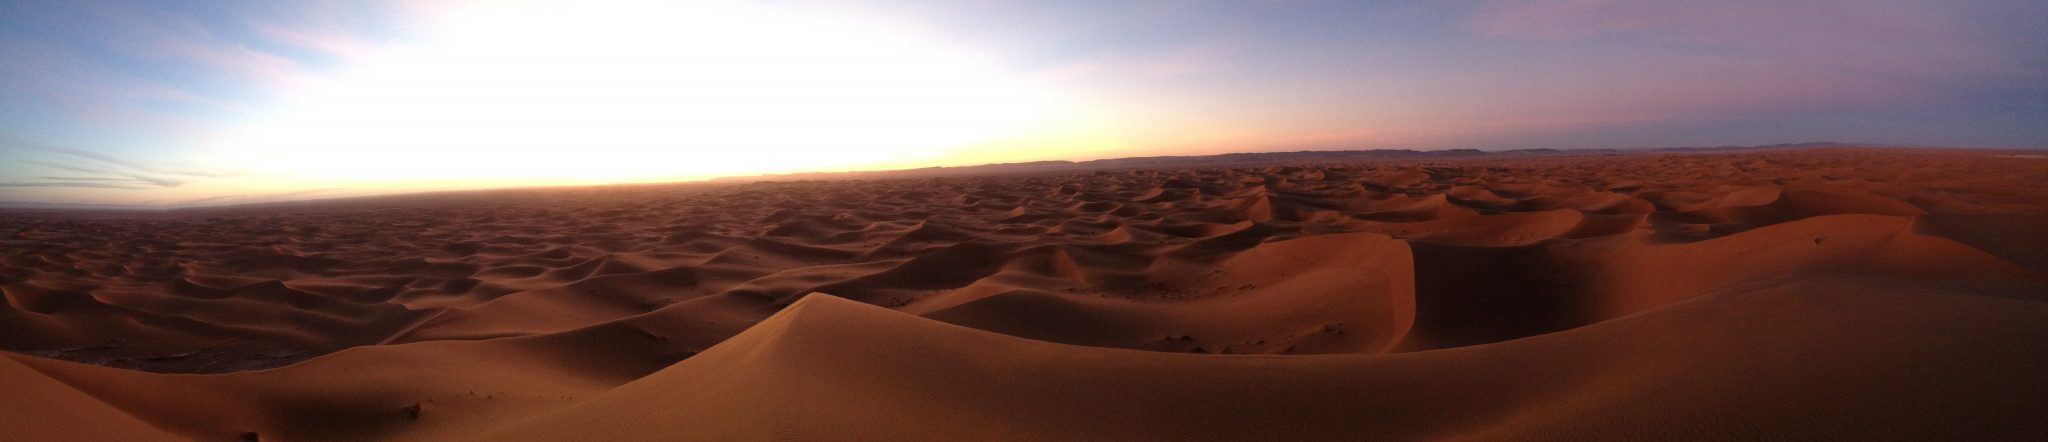 10 Reasons to Trek the Sahara